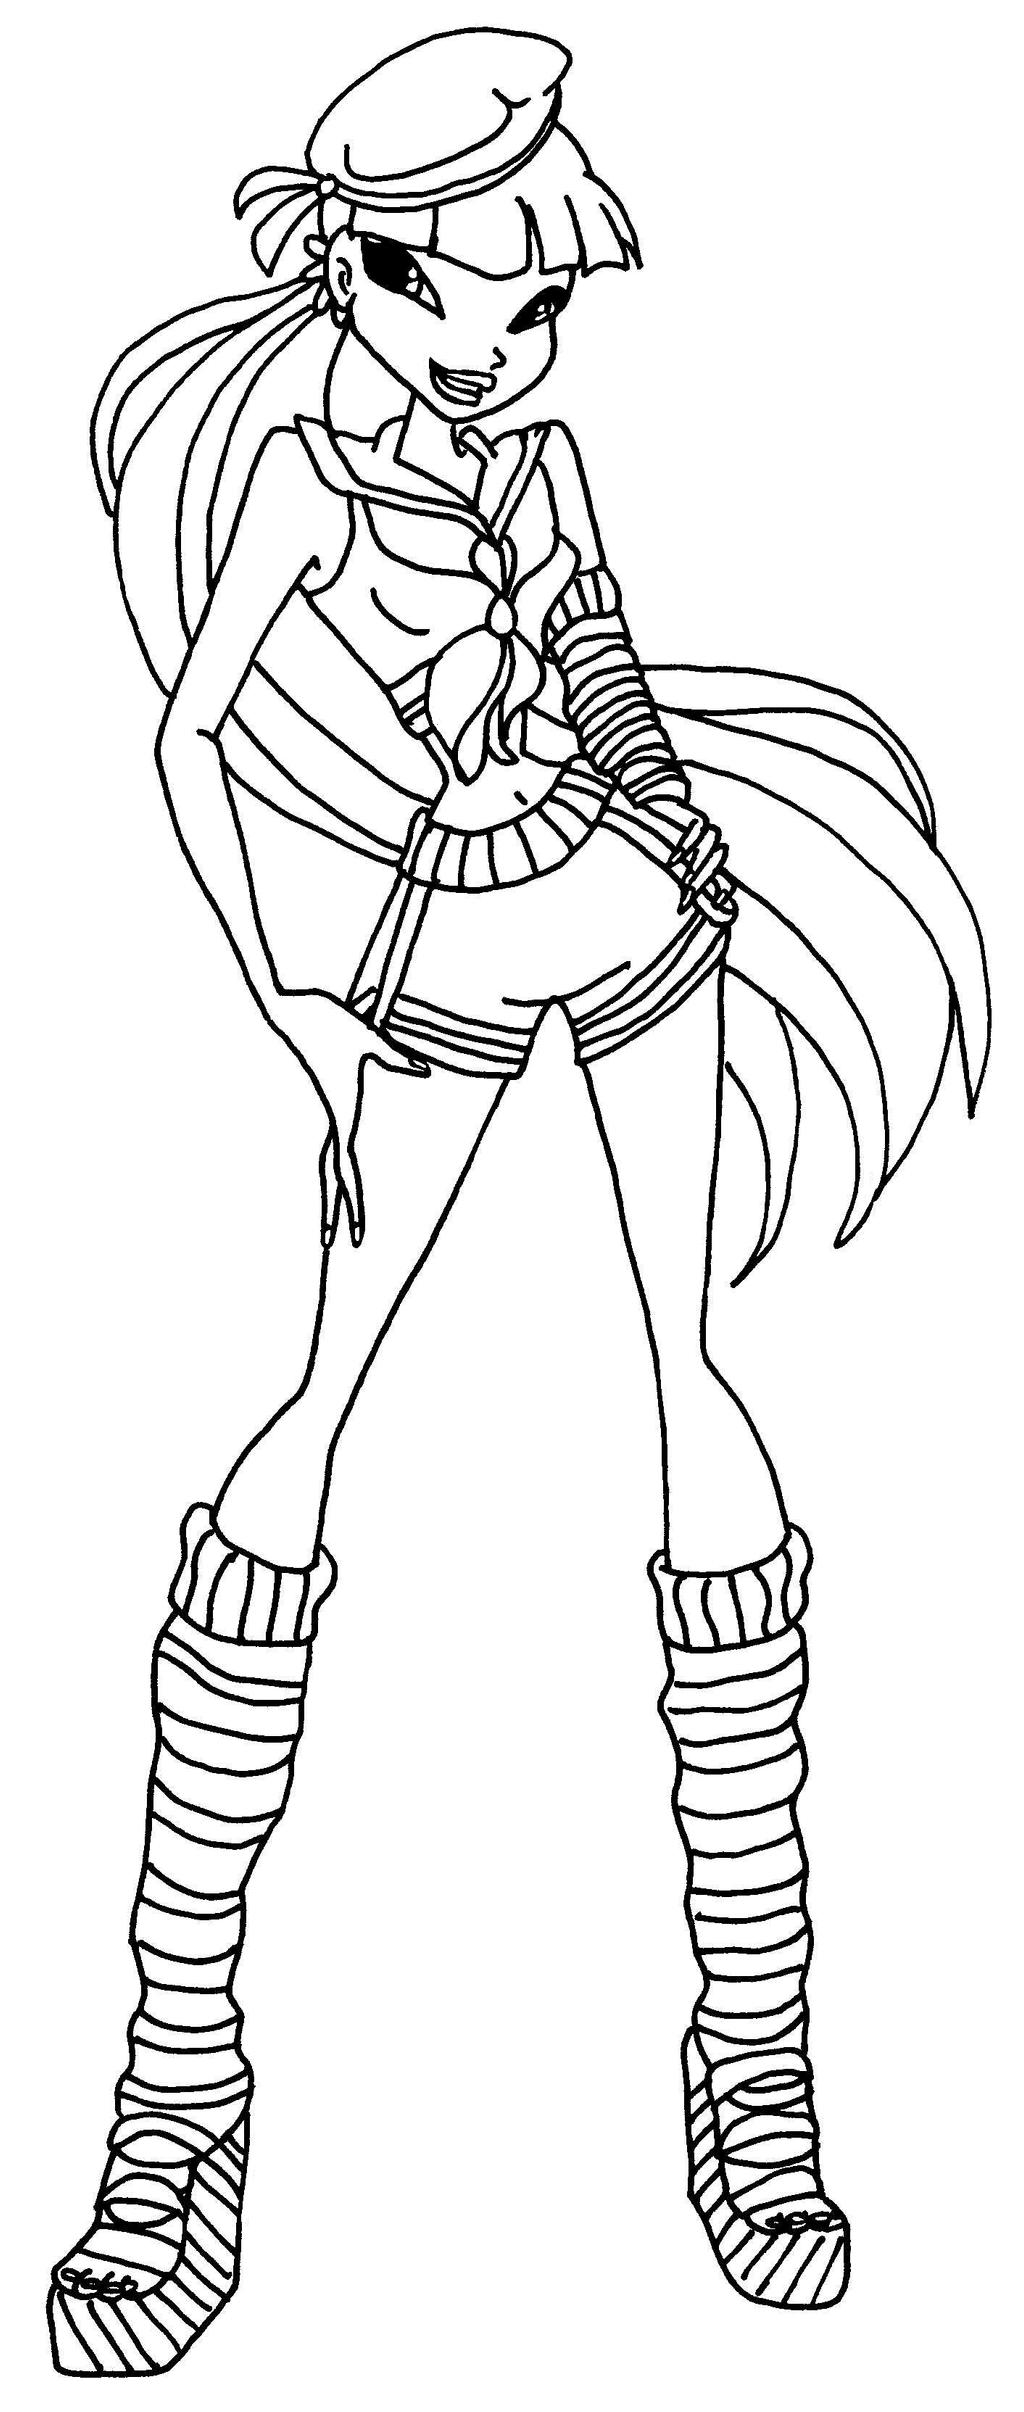 winx club musa winx club musa coloring pages sketch coloring page musa club winx